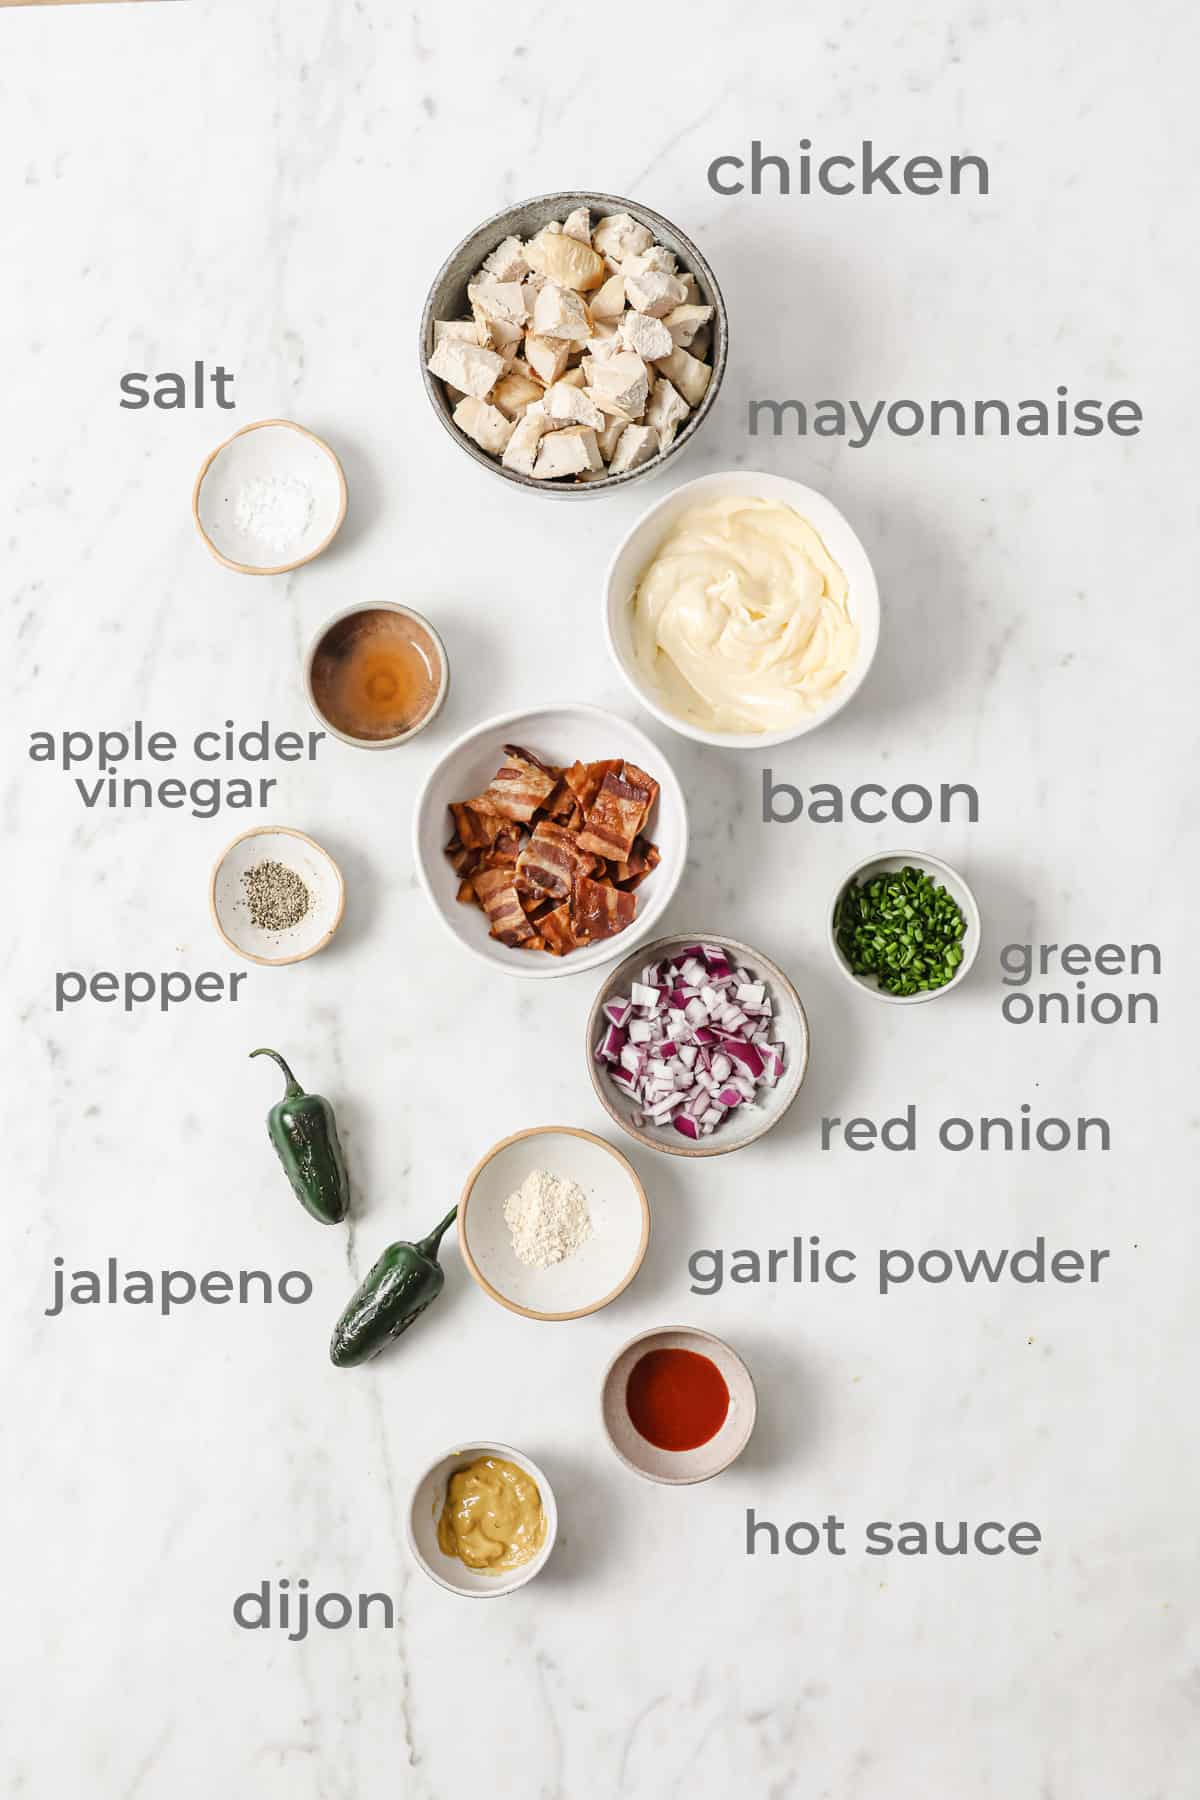 ingredients for chicken salad - chicken, jalapeño, red onion, bacon, mayo, green onion